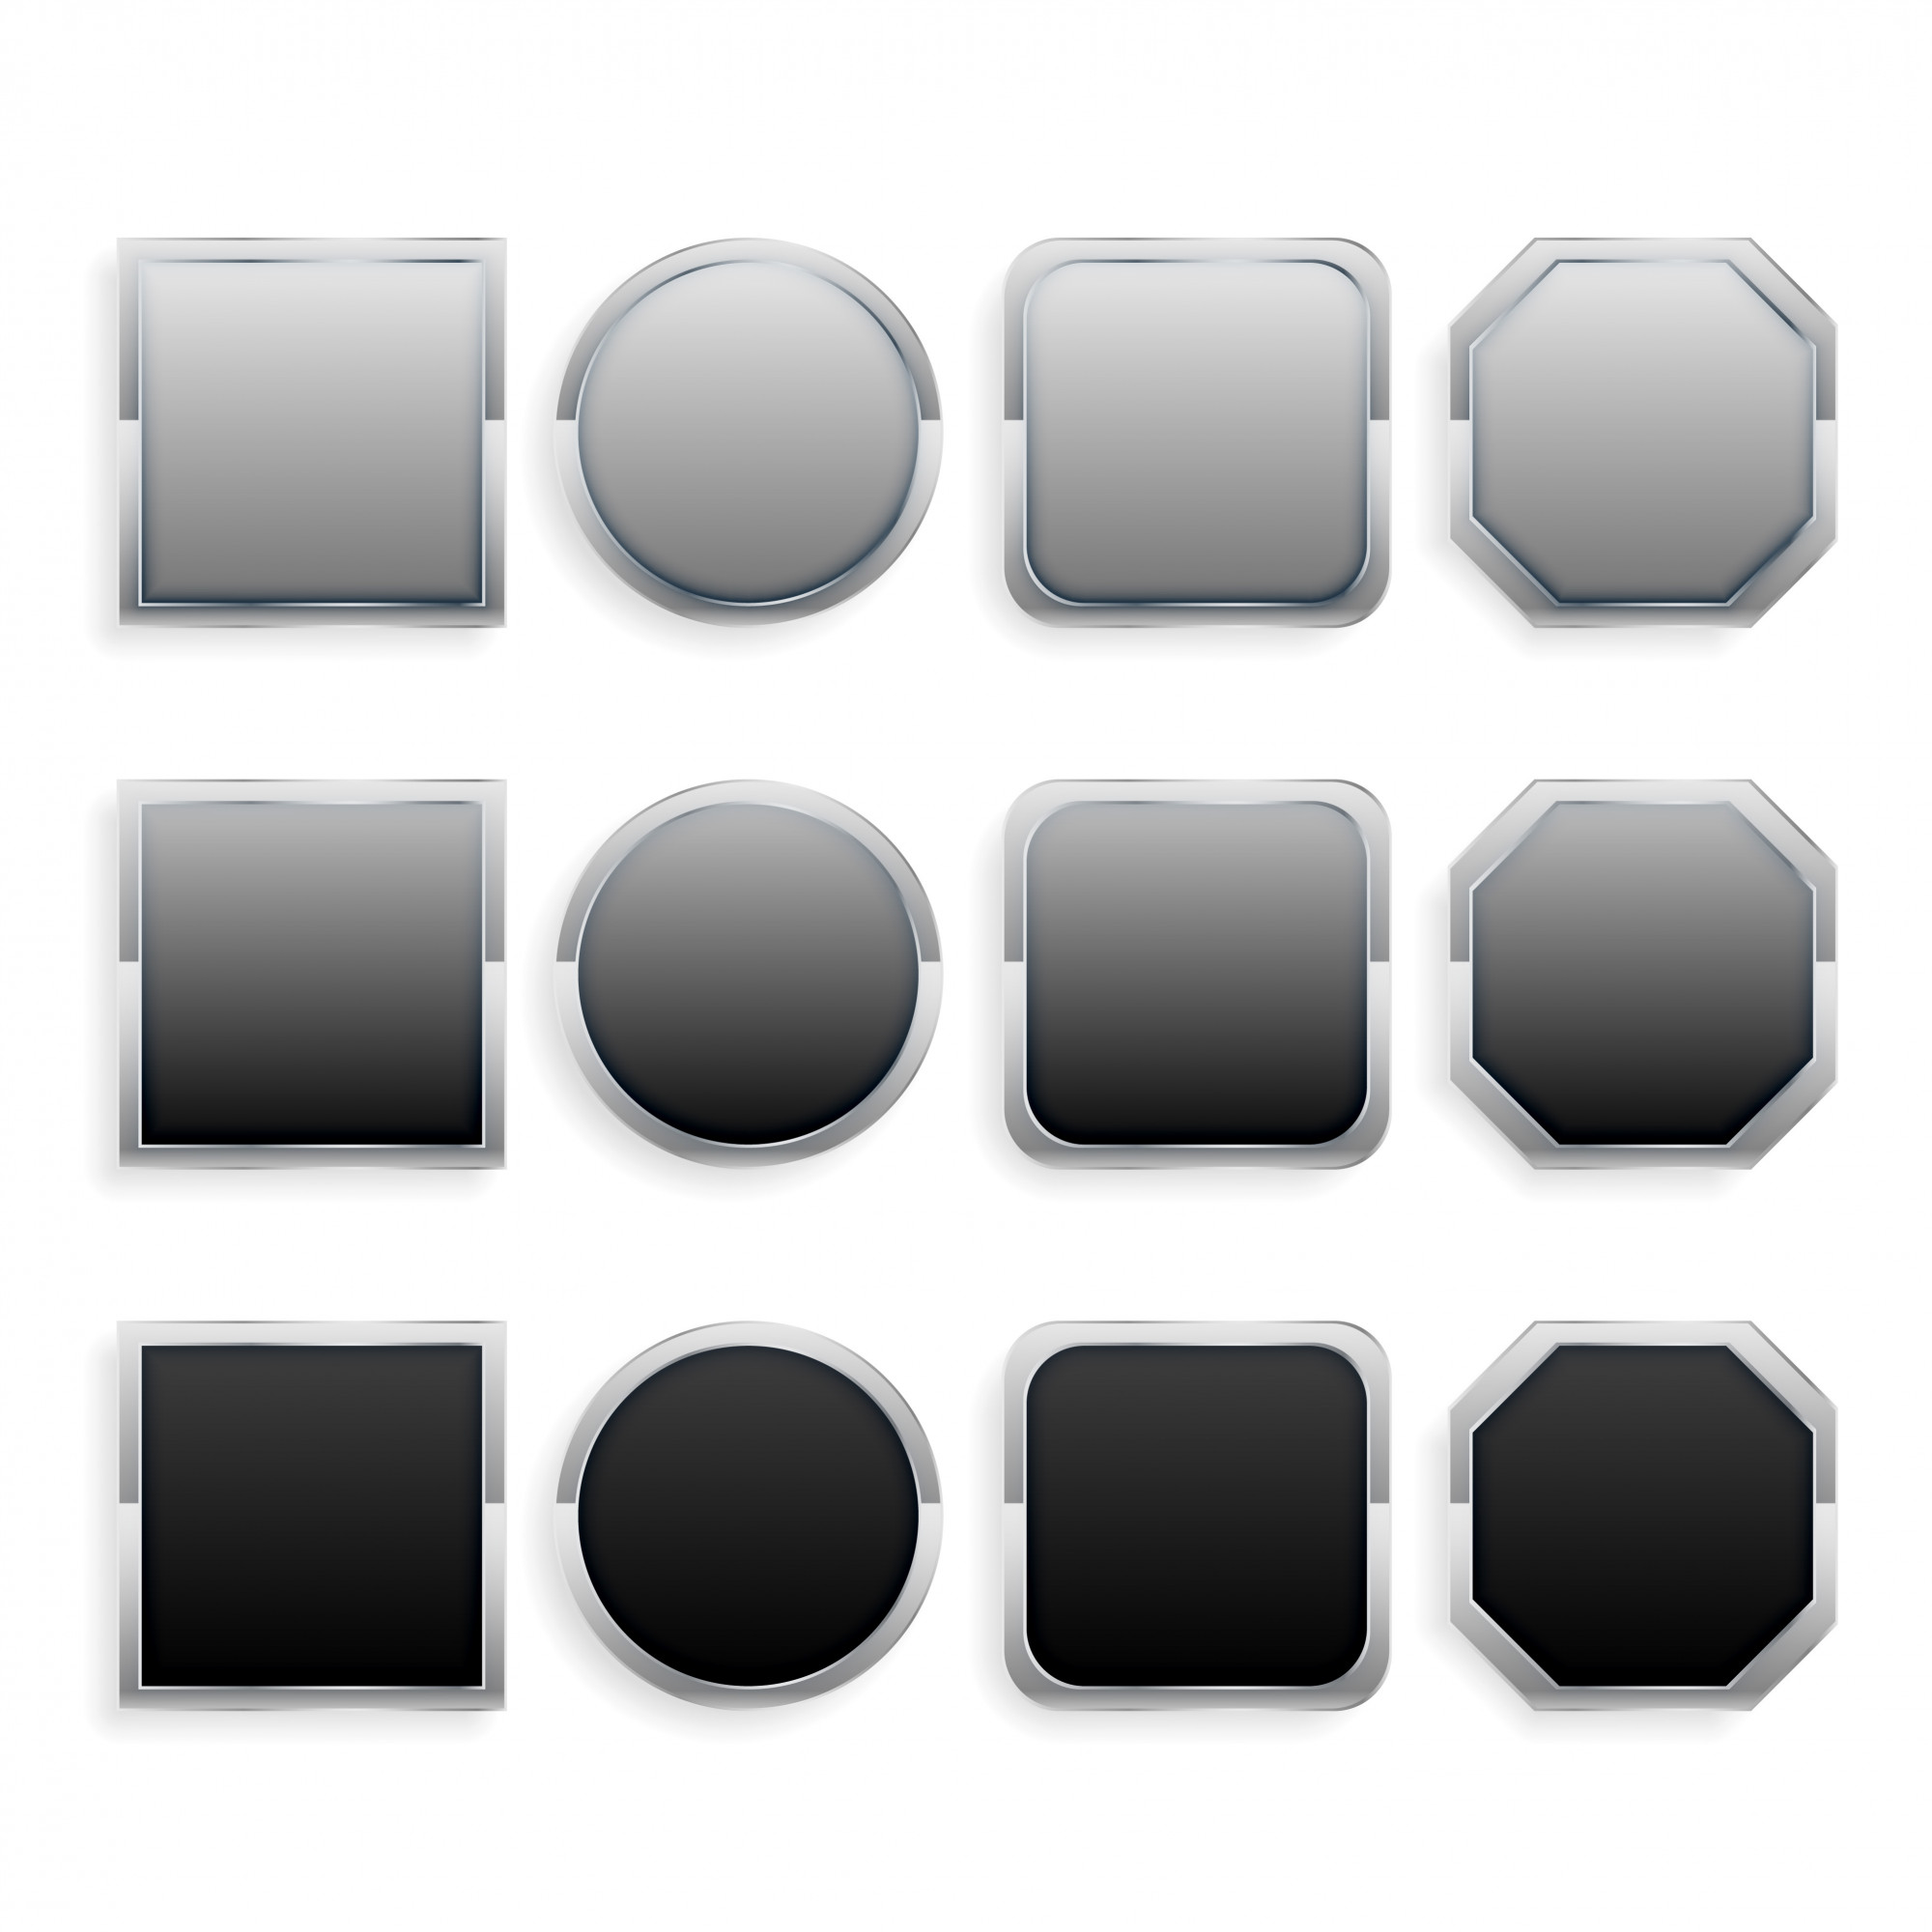 Set of black and gray metal frame buttons